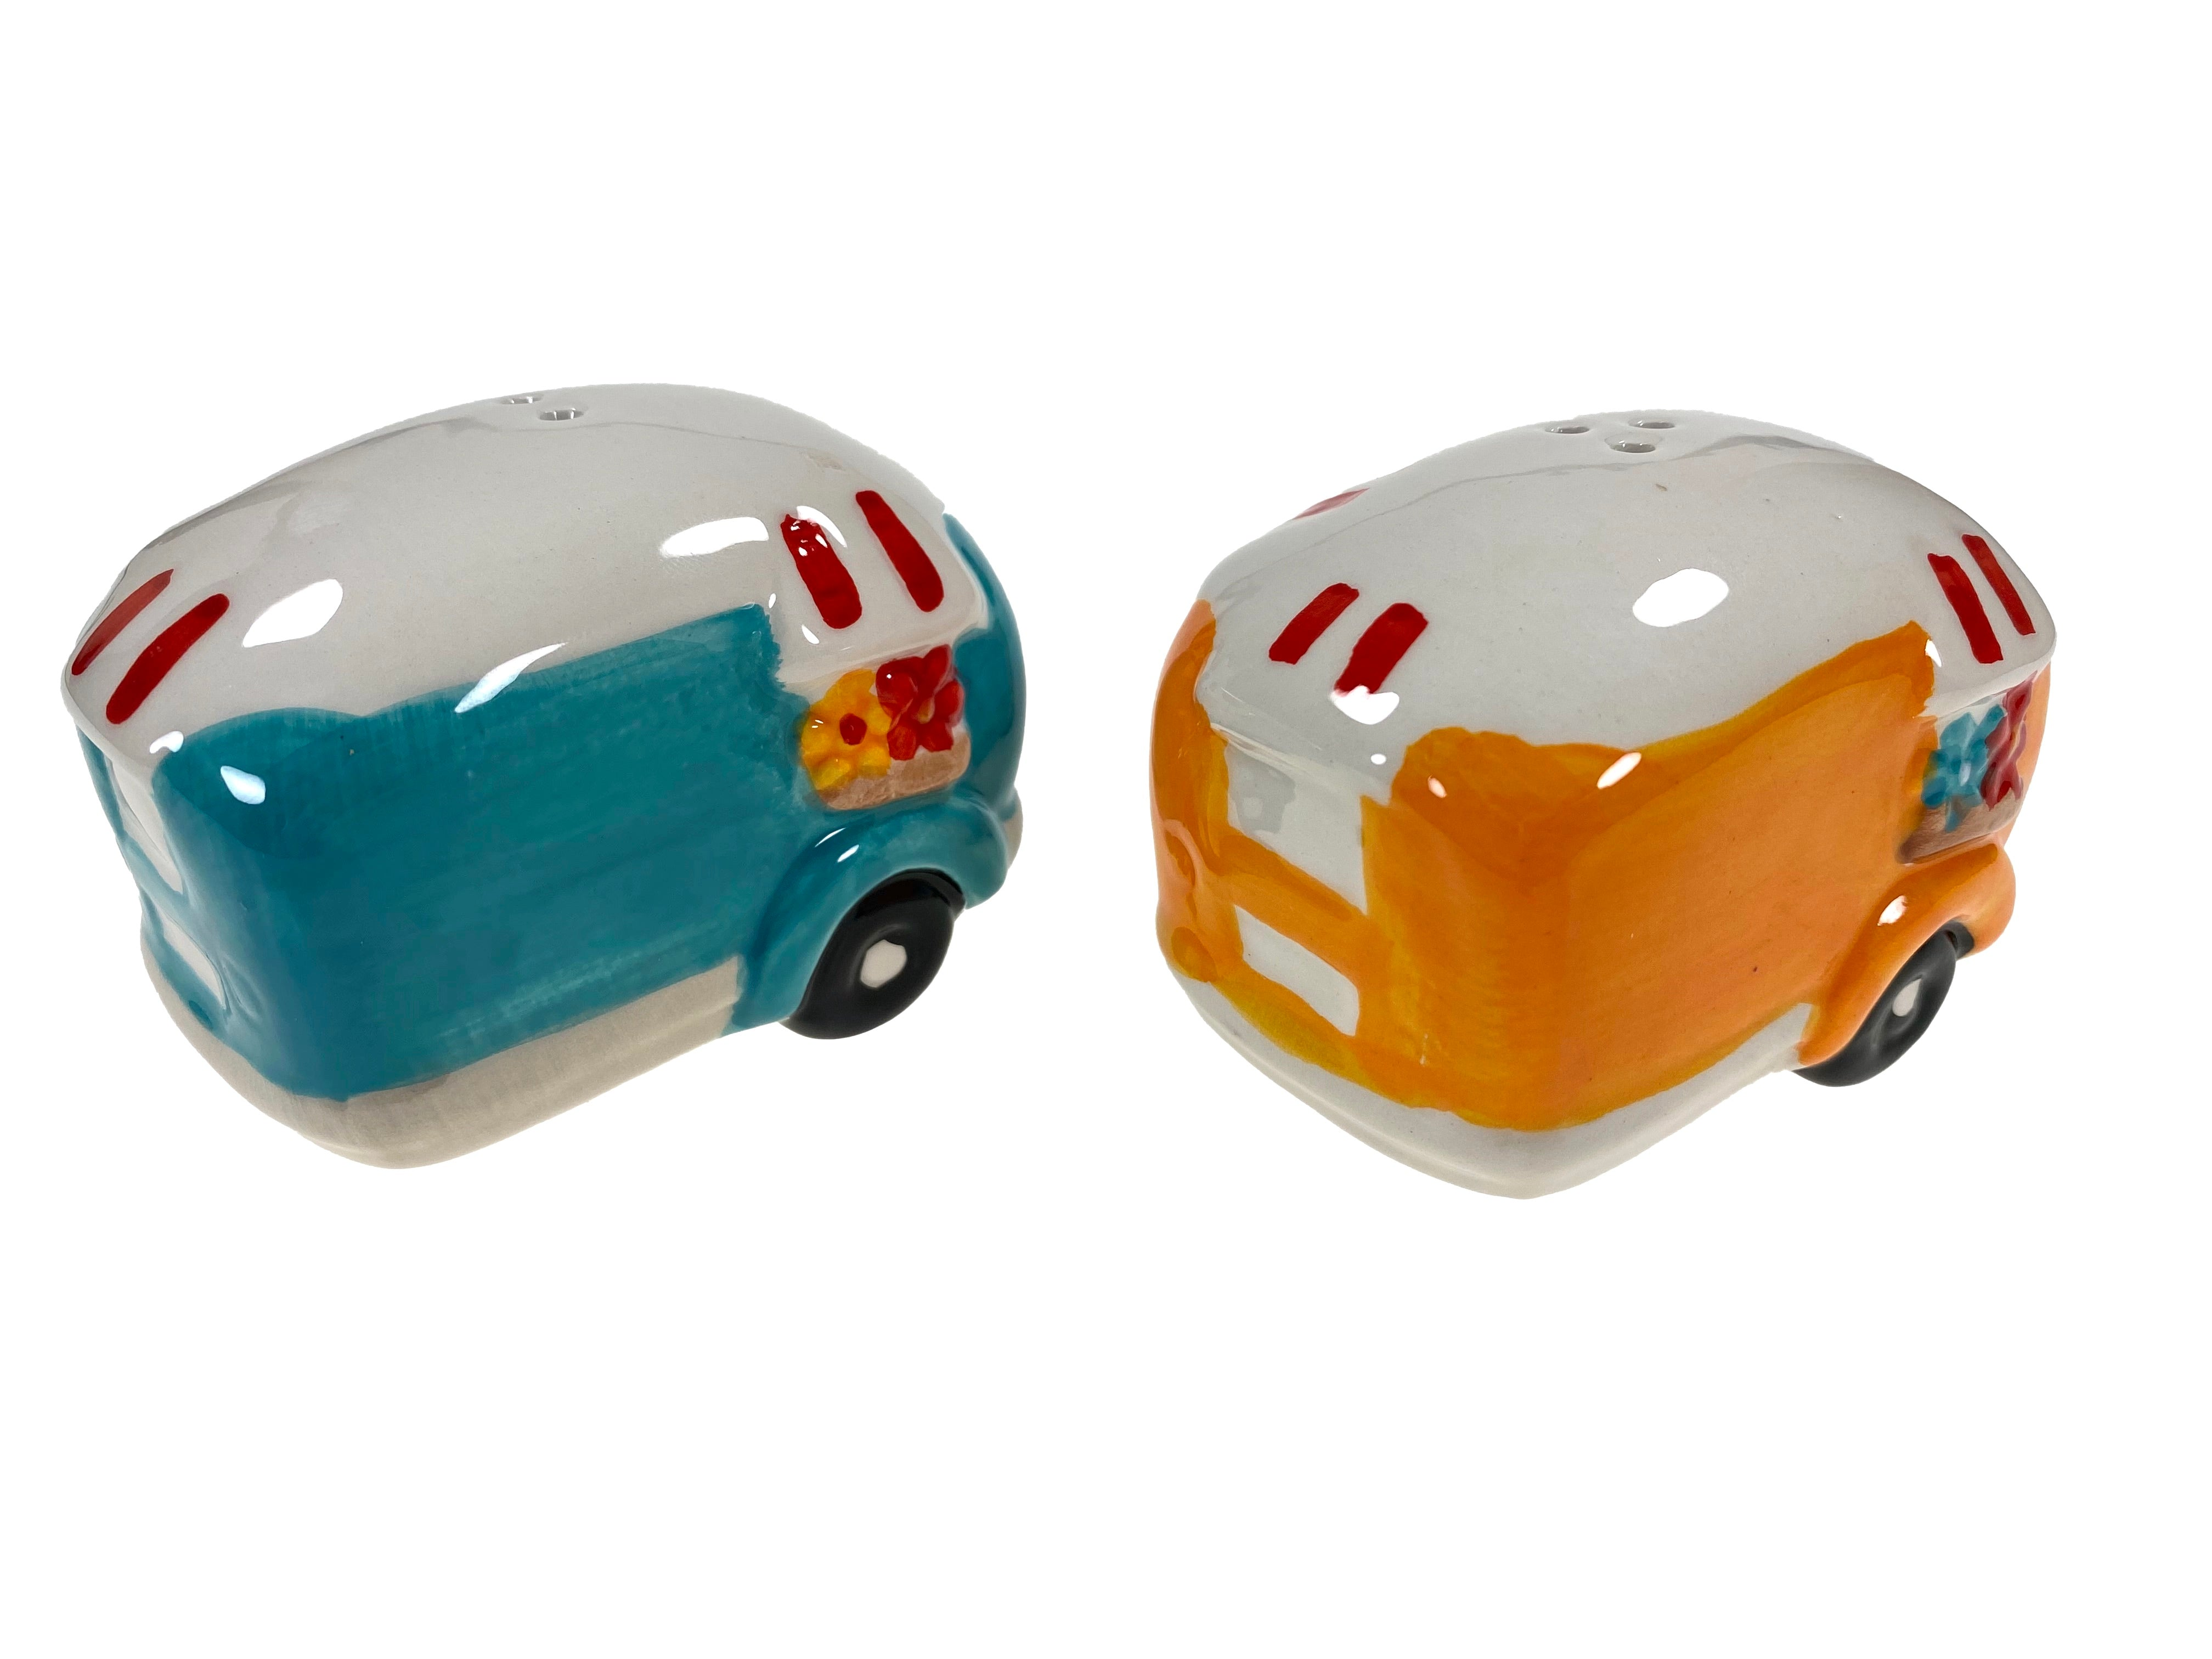 Camping Trailer Salt And Pepper Shakers